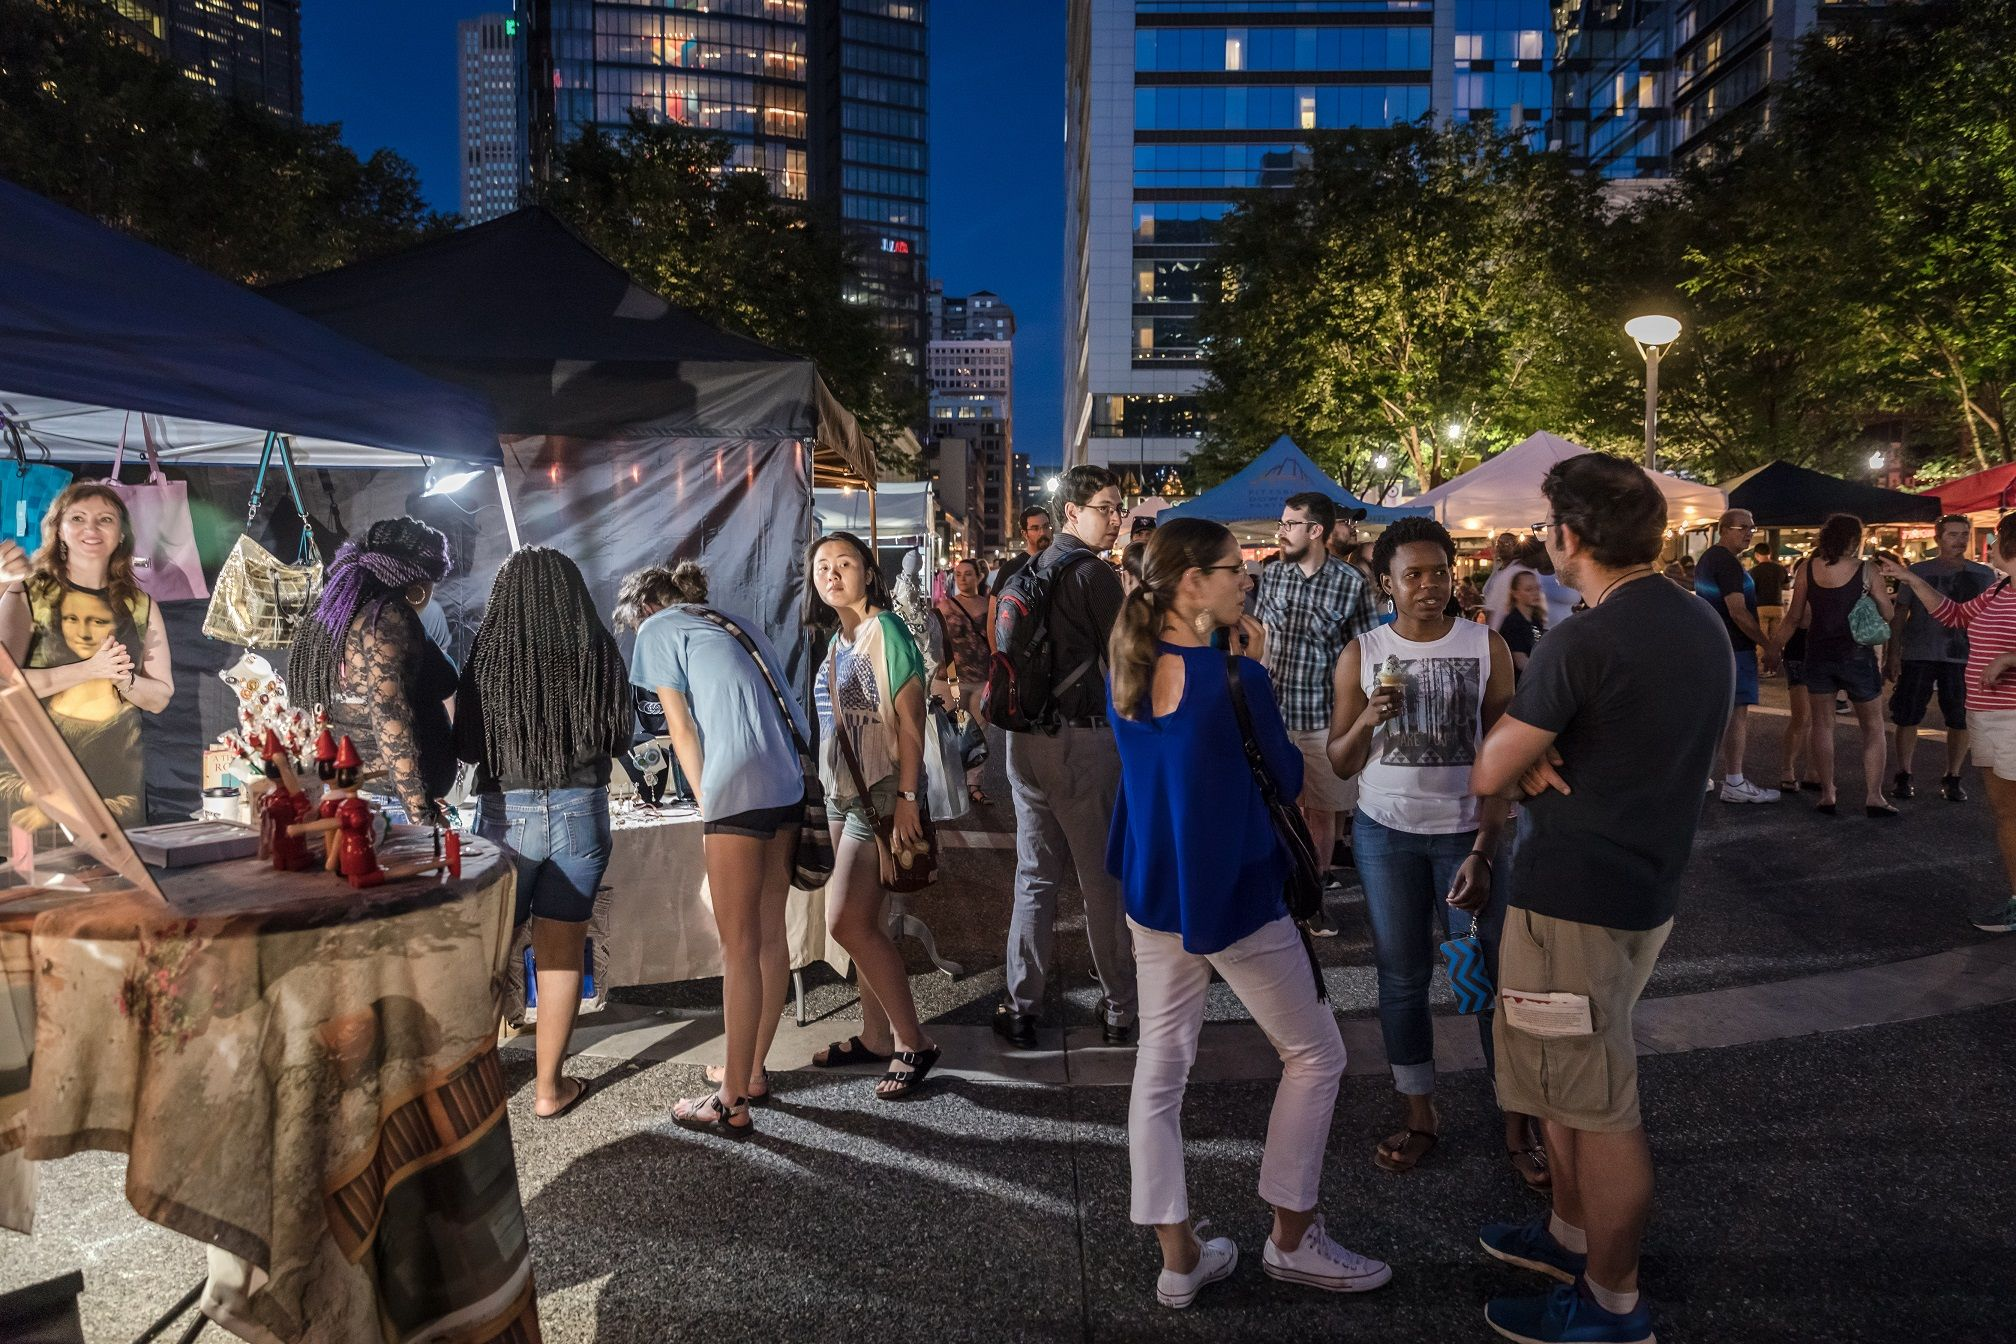 You can gather with friends to chat, shop, and eat and drink at the Saturday Night Market in Market Square. (Photo: Renee Rosensteel/Pittsburgh Downtown Partnership).